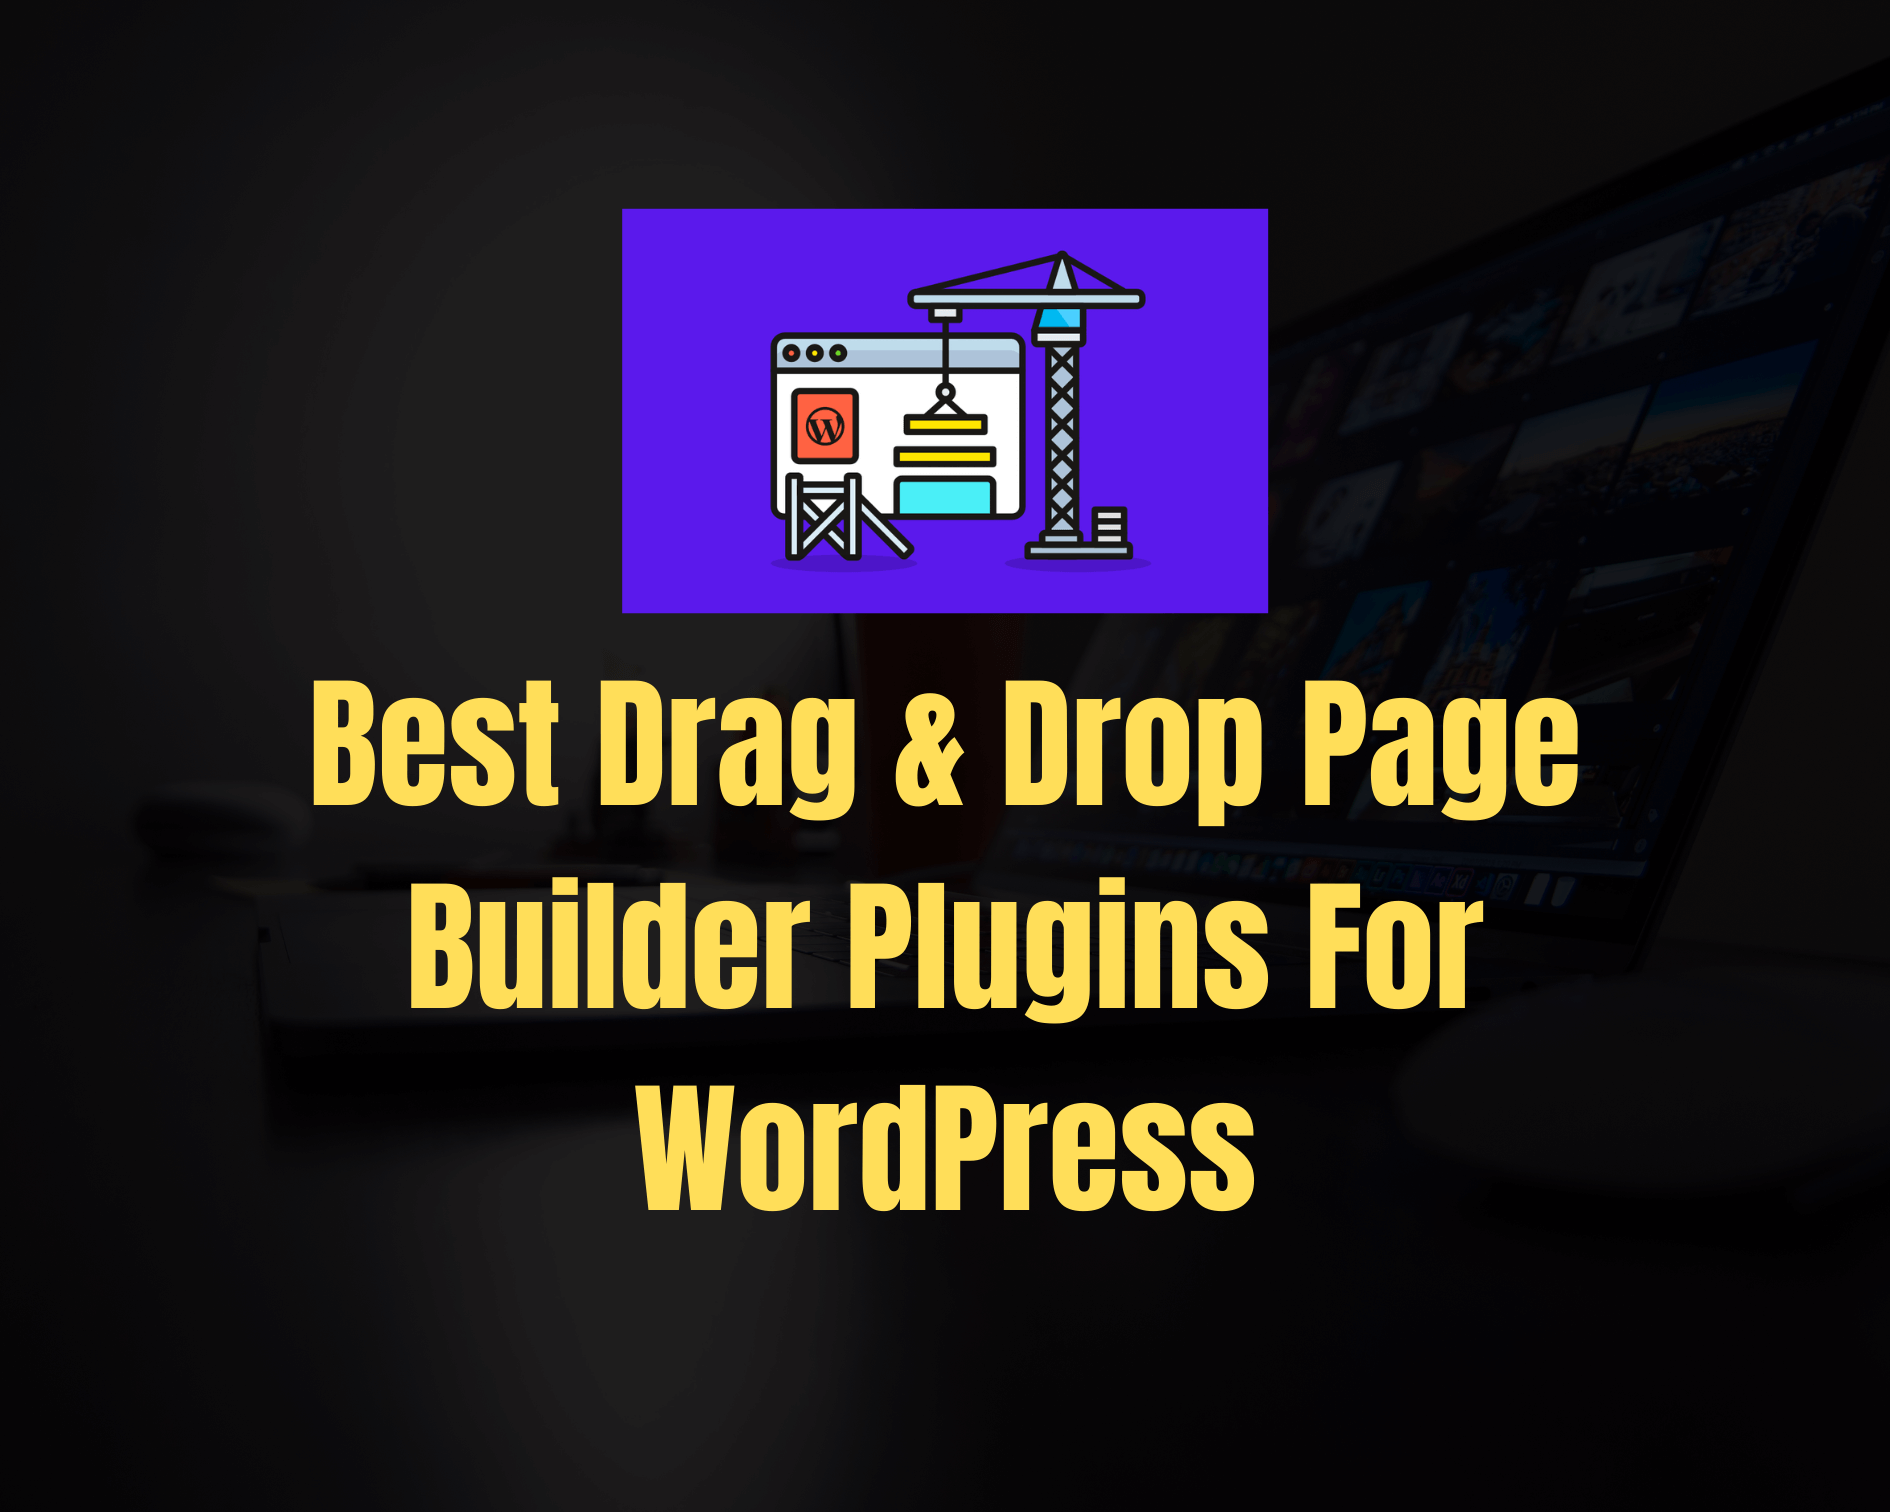 6 Best Most Popular Drag & Drop Page Builder Plugins for WordPress